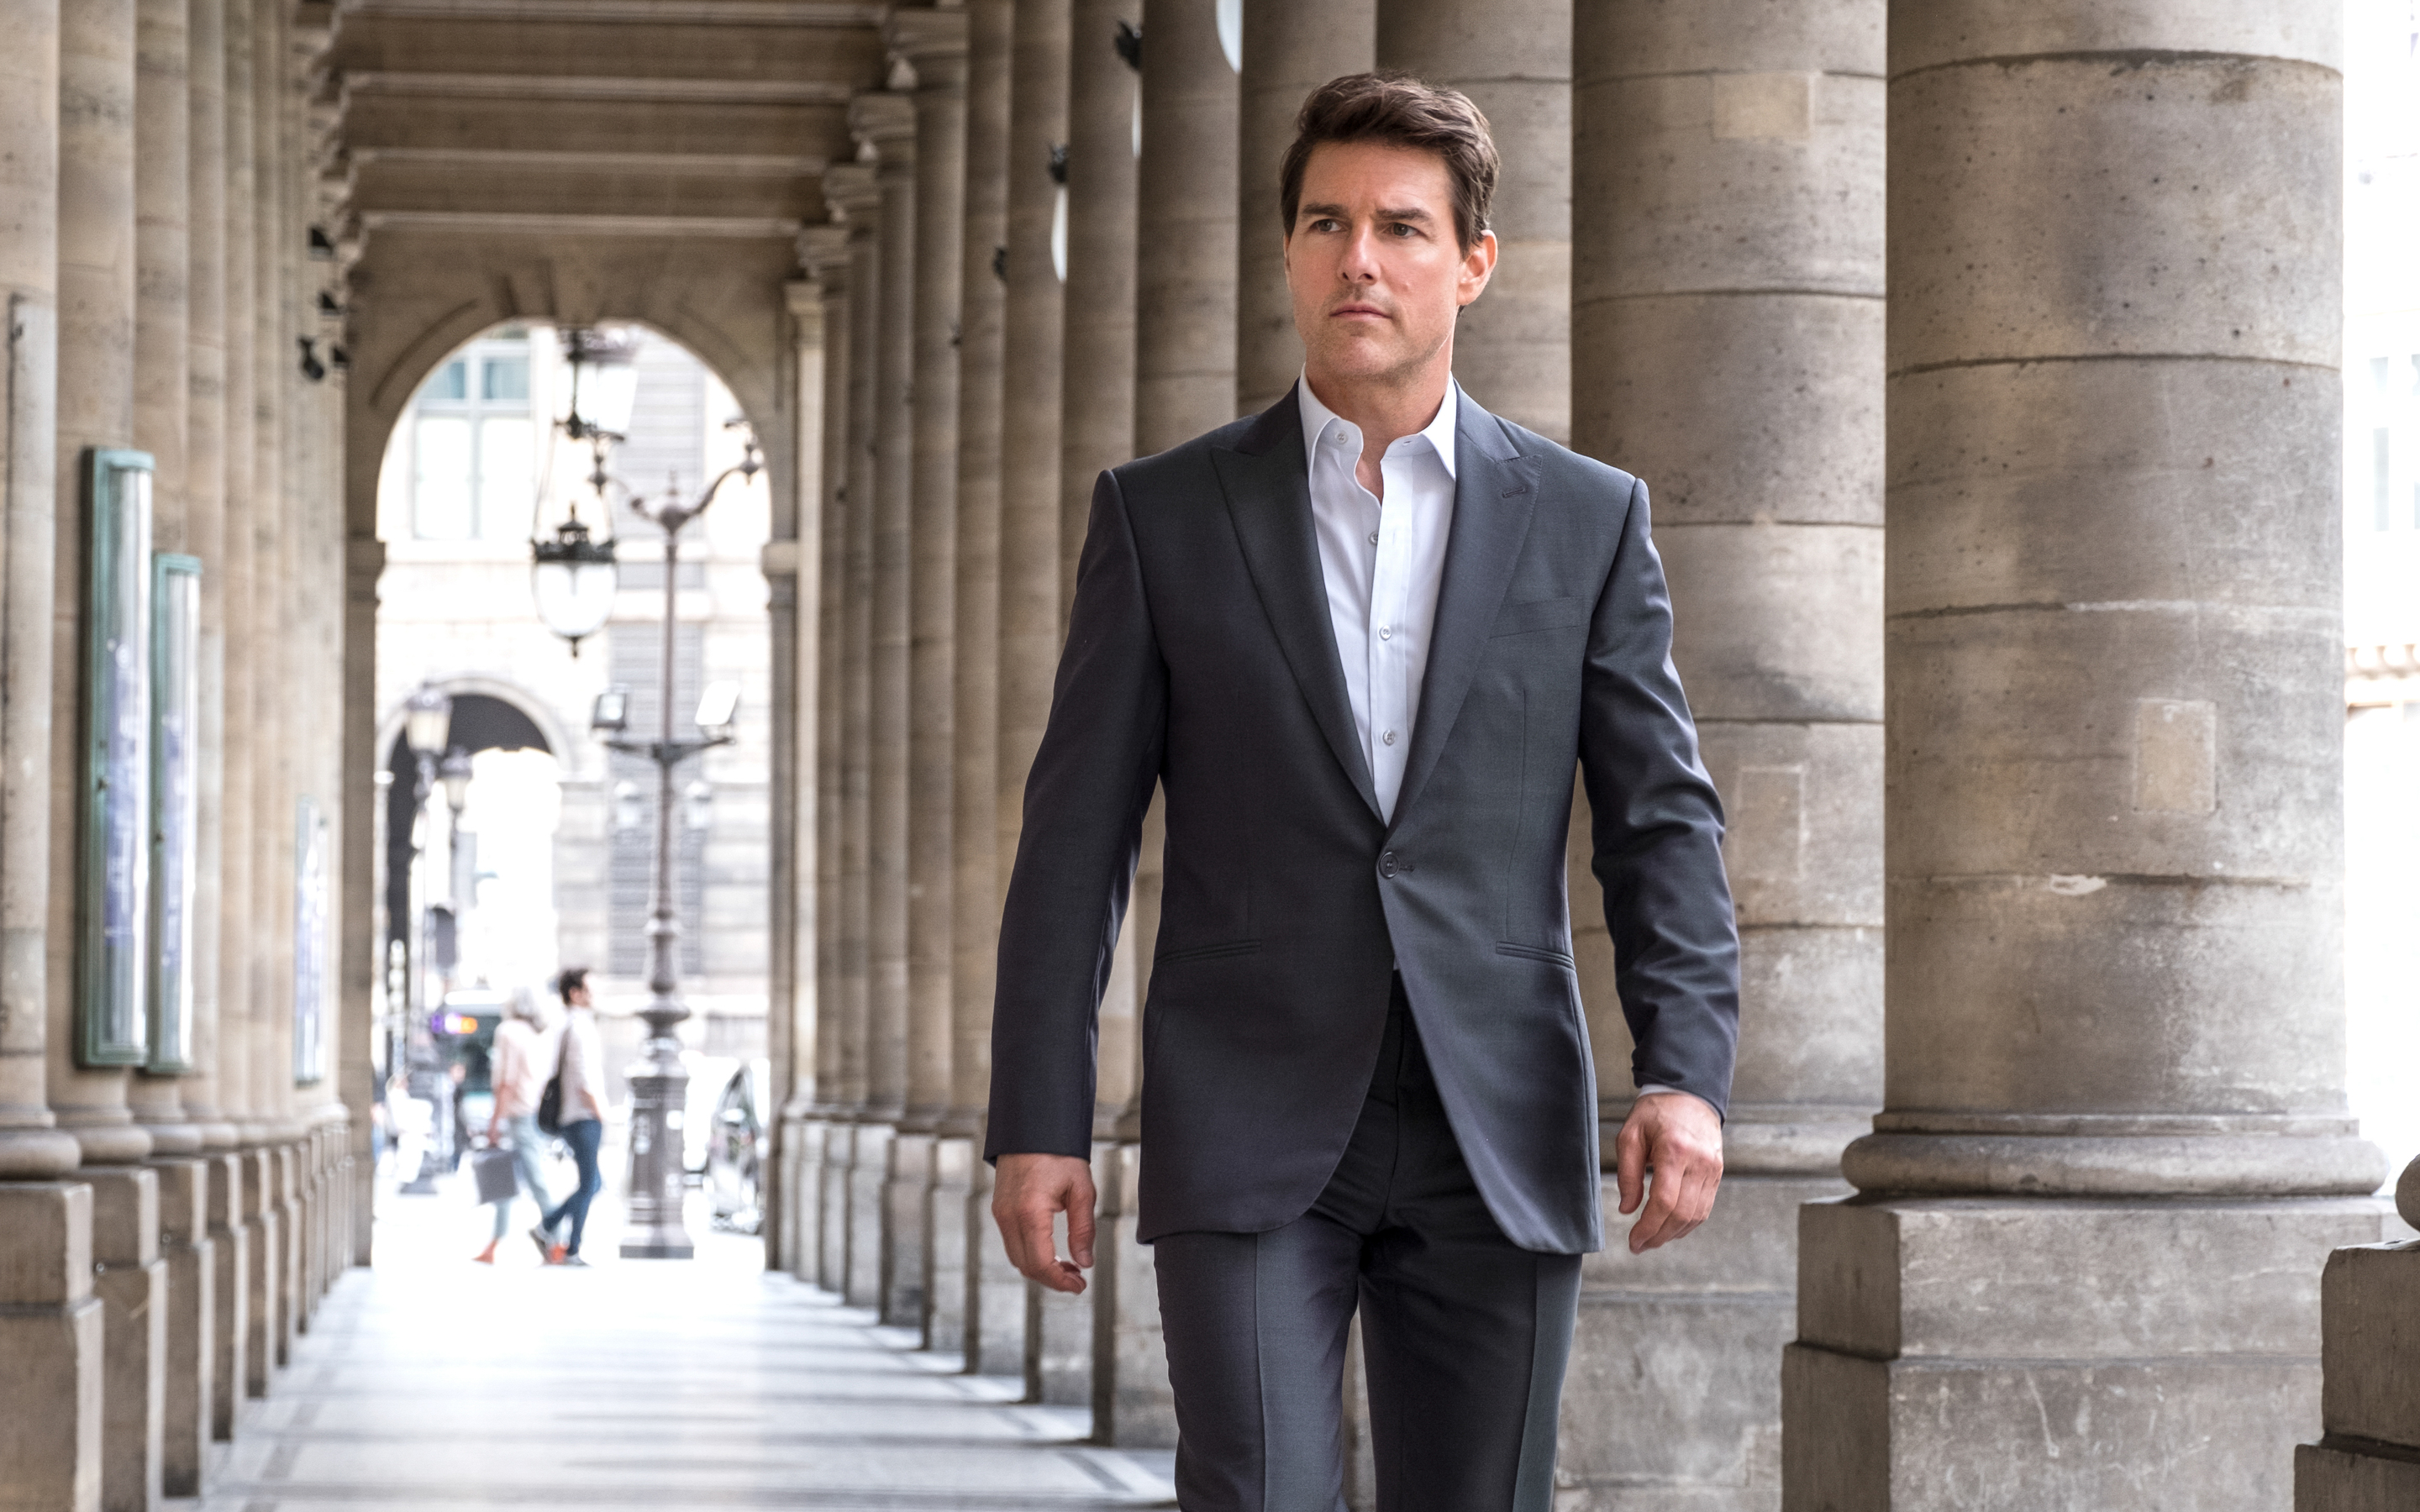 tom-cruise-as-ethan-hunt-in-mission-impossible-fallout-movie-2018-xz.jpg